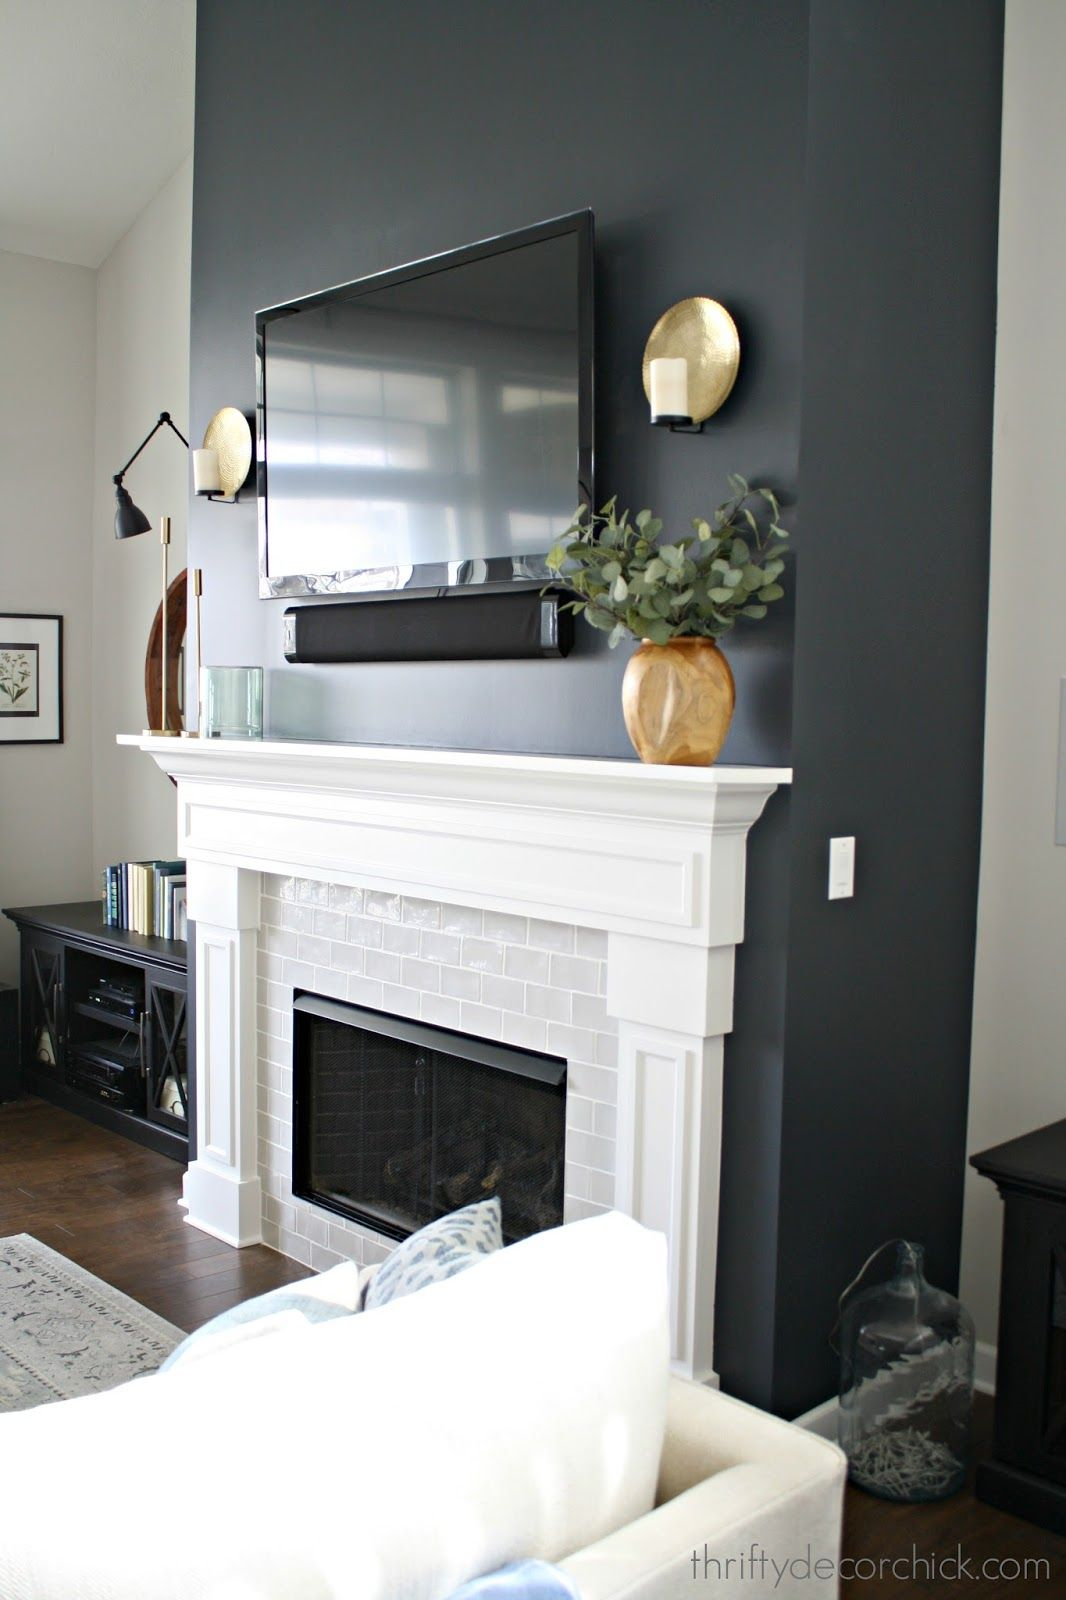 Cyberspace From Sherwin Williams Thriftydecorchic Feature Wall Living Room Fireplace Feature Wall White Fireplace